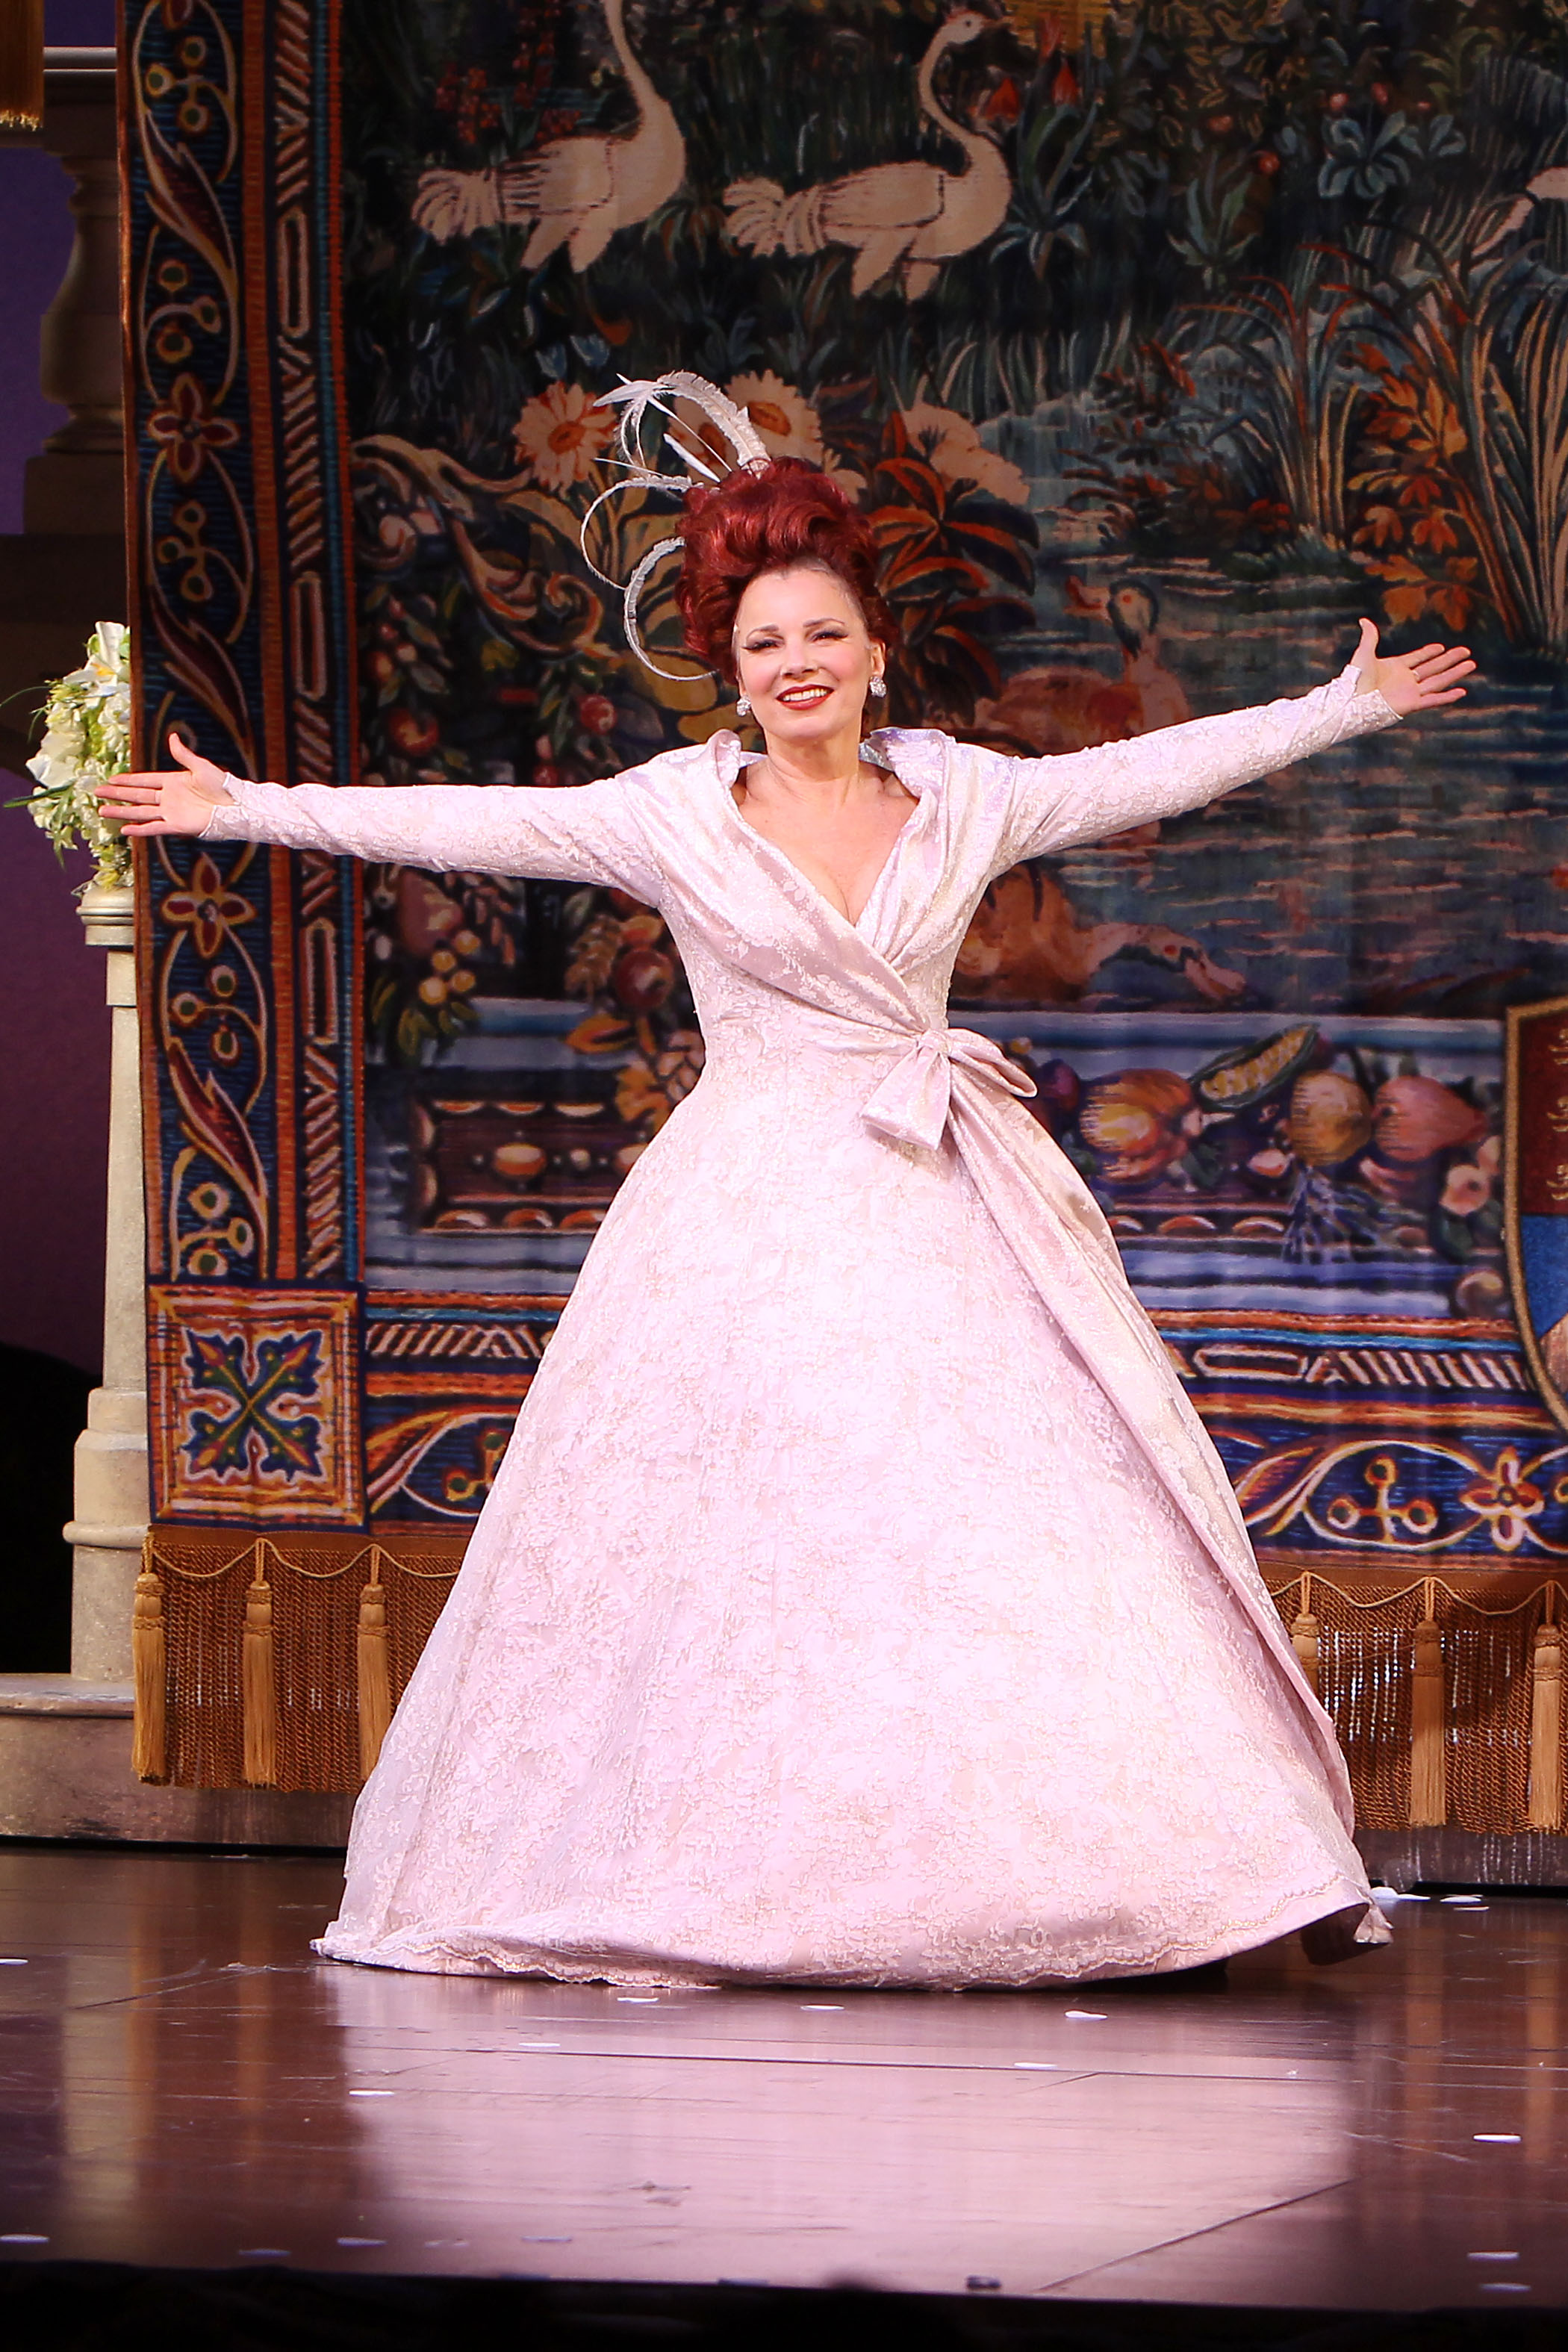 Jepsen is accompanied in <i>Rodgers and Hammerstein's Cinderella</i> by Fran Drescher, who made her Broadway debut as the wicked step mother.